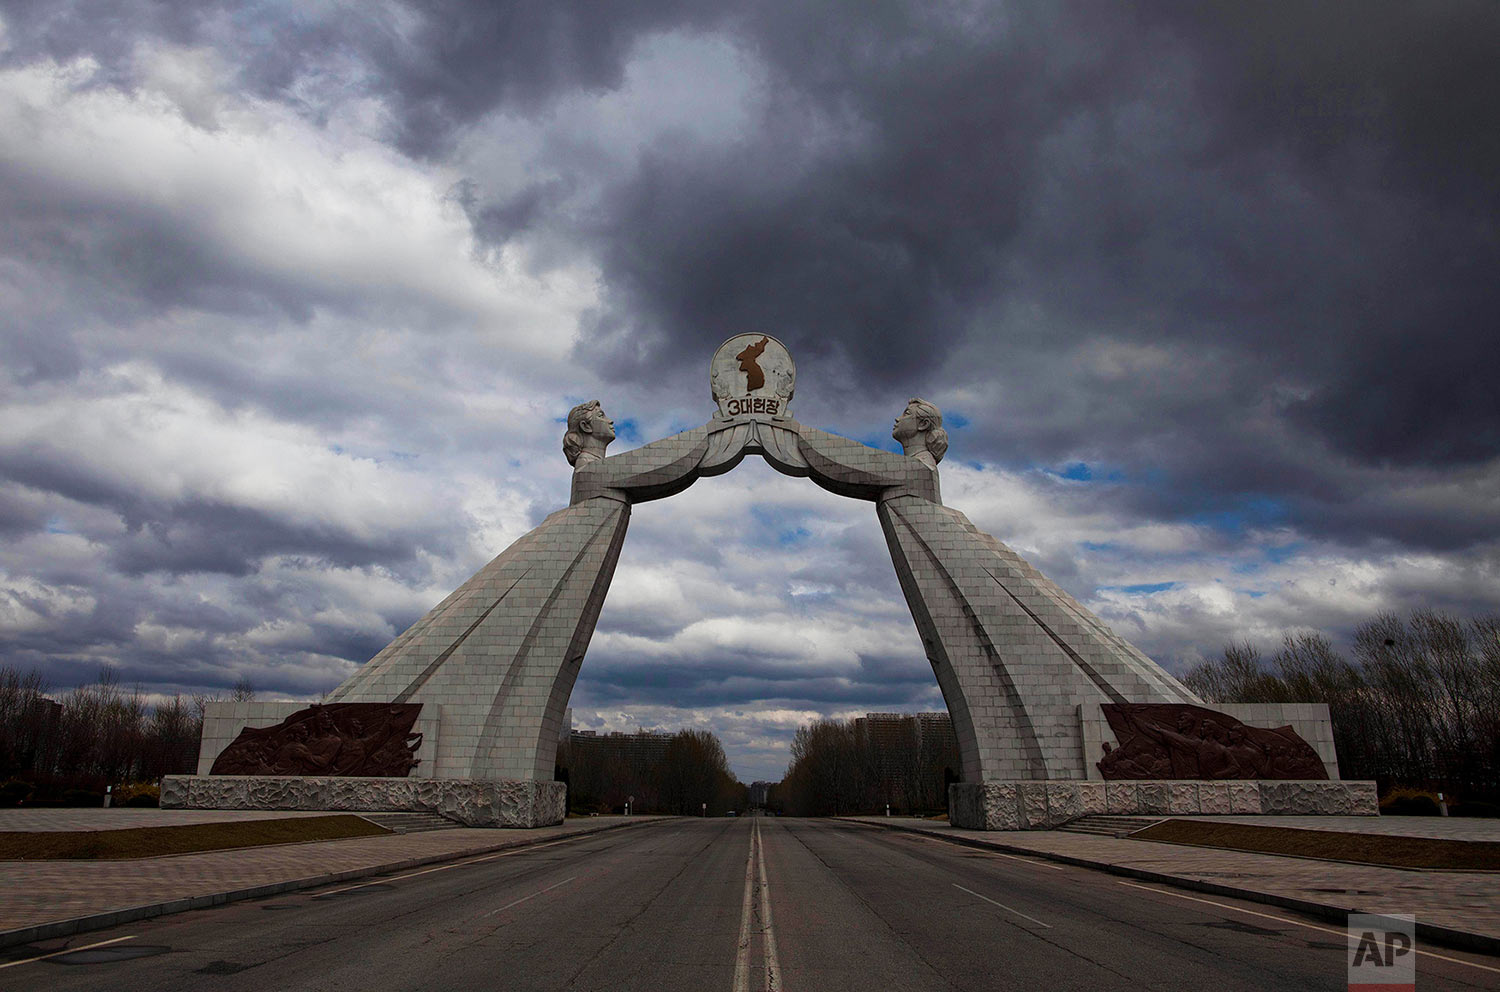 A statue known as the Monument to the Three Charters for National Reunification, which symbolizes the hope for eventual reunification of the two Koreas, arches over a highway at the edge of Pyongyang, North Korea, on April 18, 2011. (AP Photo/David Guttenfelder)